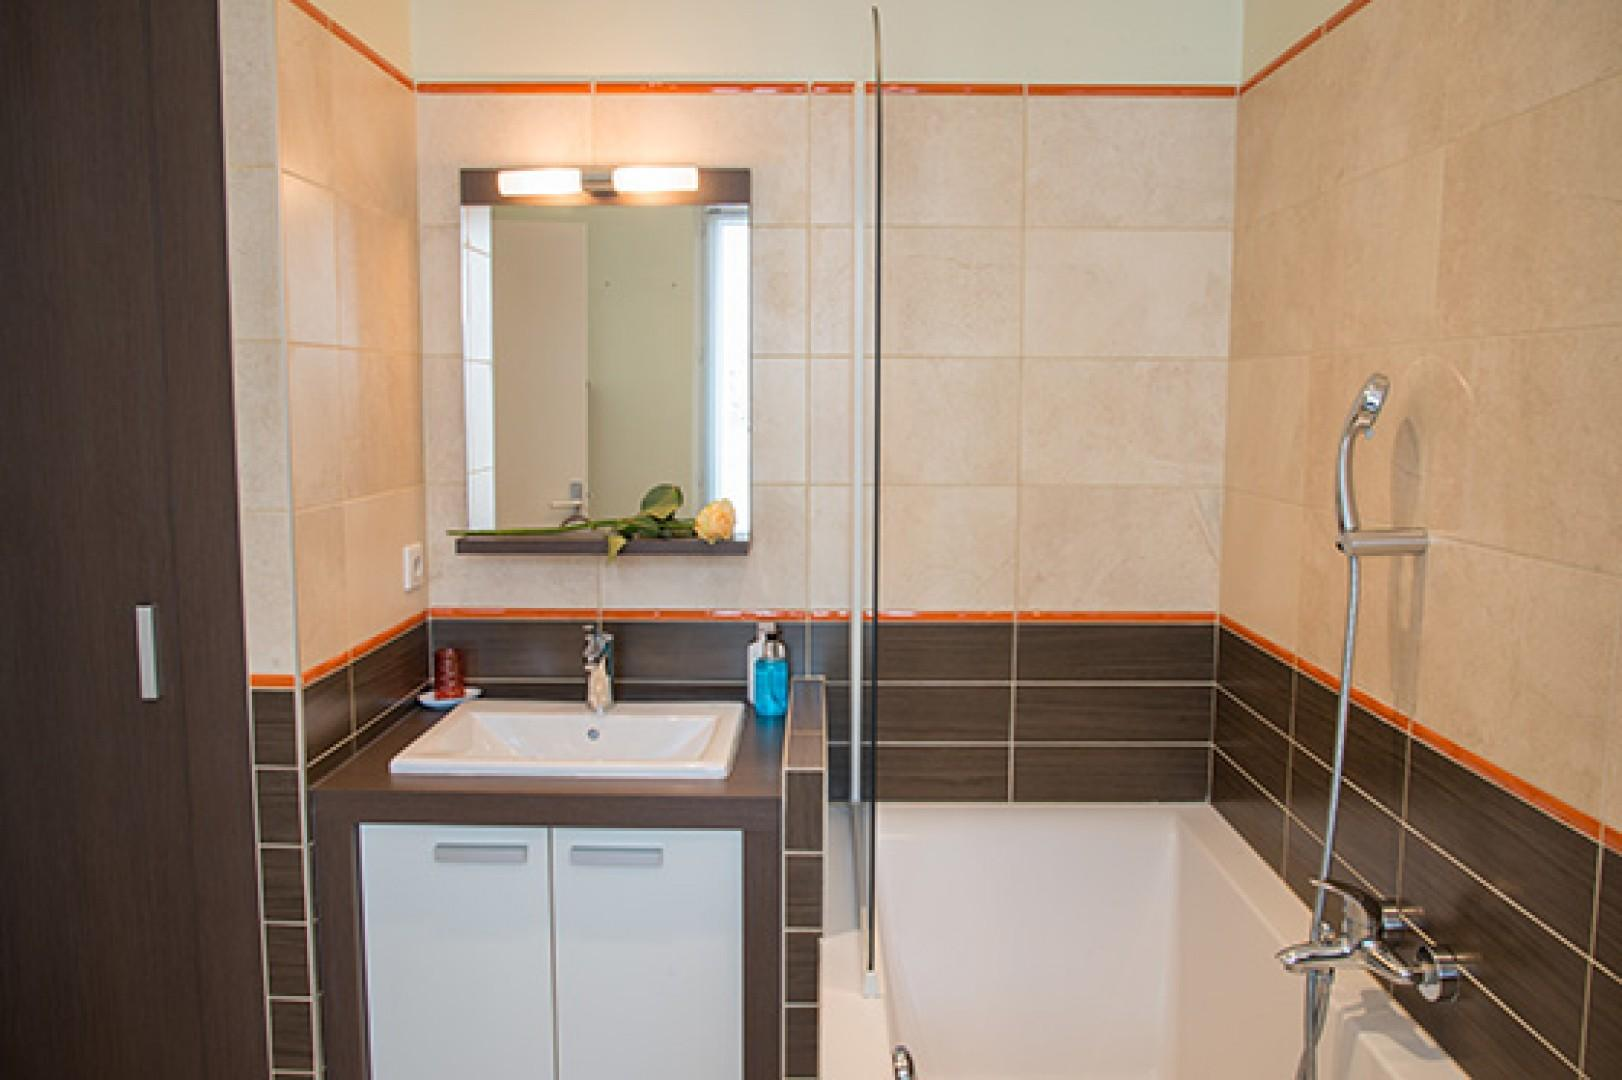 The streamlined bathroom 2 is perfect for guests.